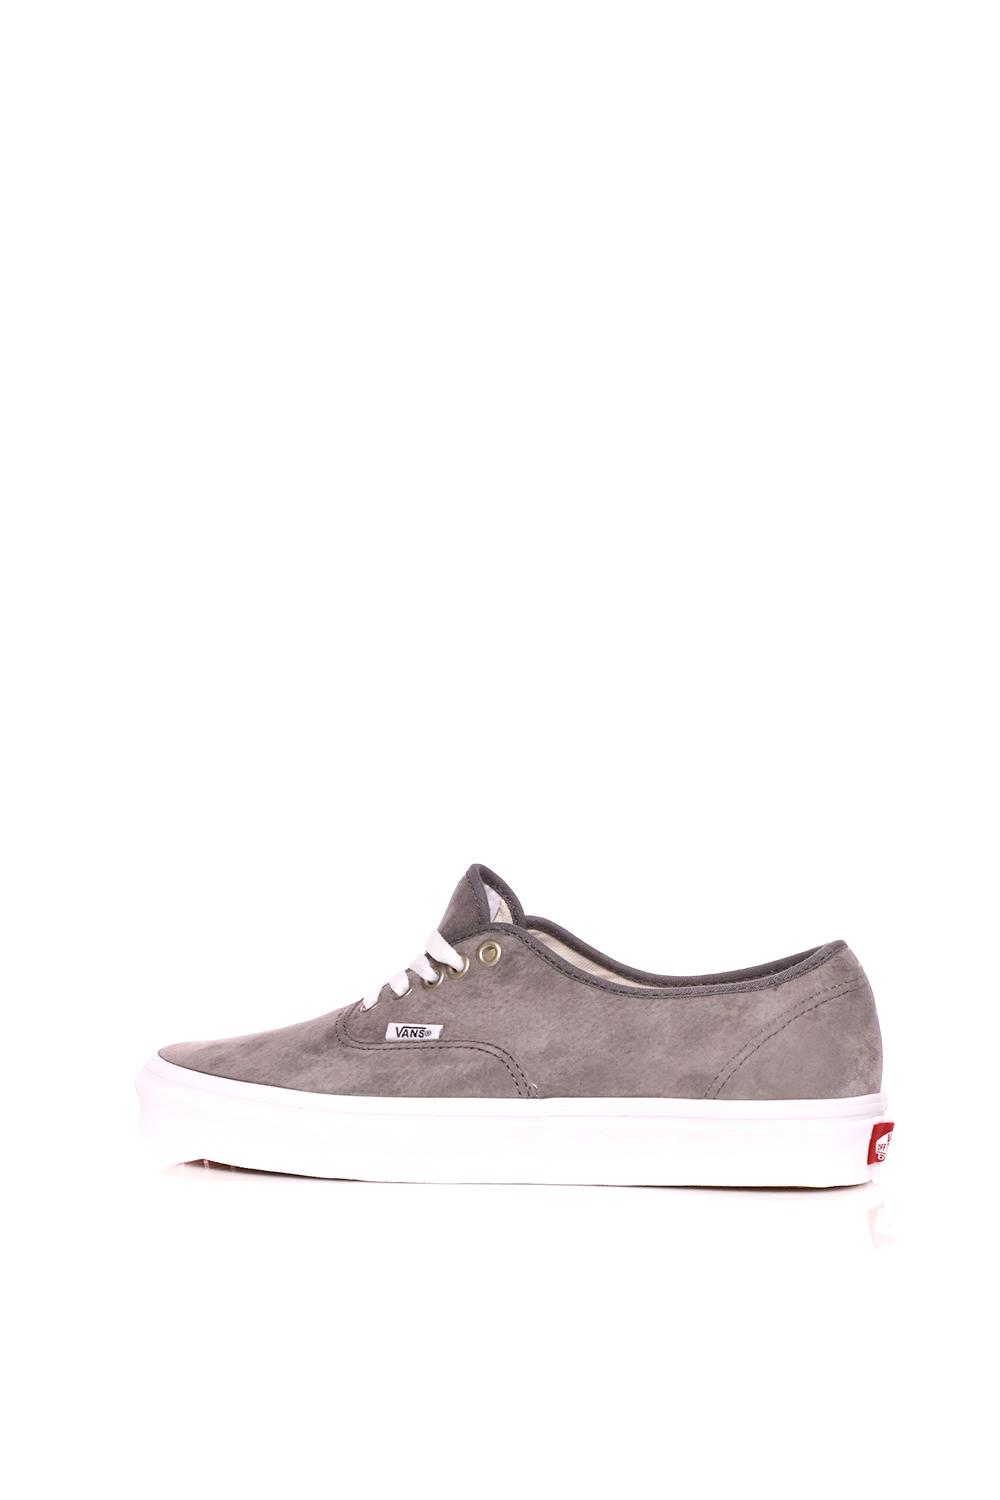 VANS – Unisex sneakers VANS Authentic γκρι